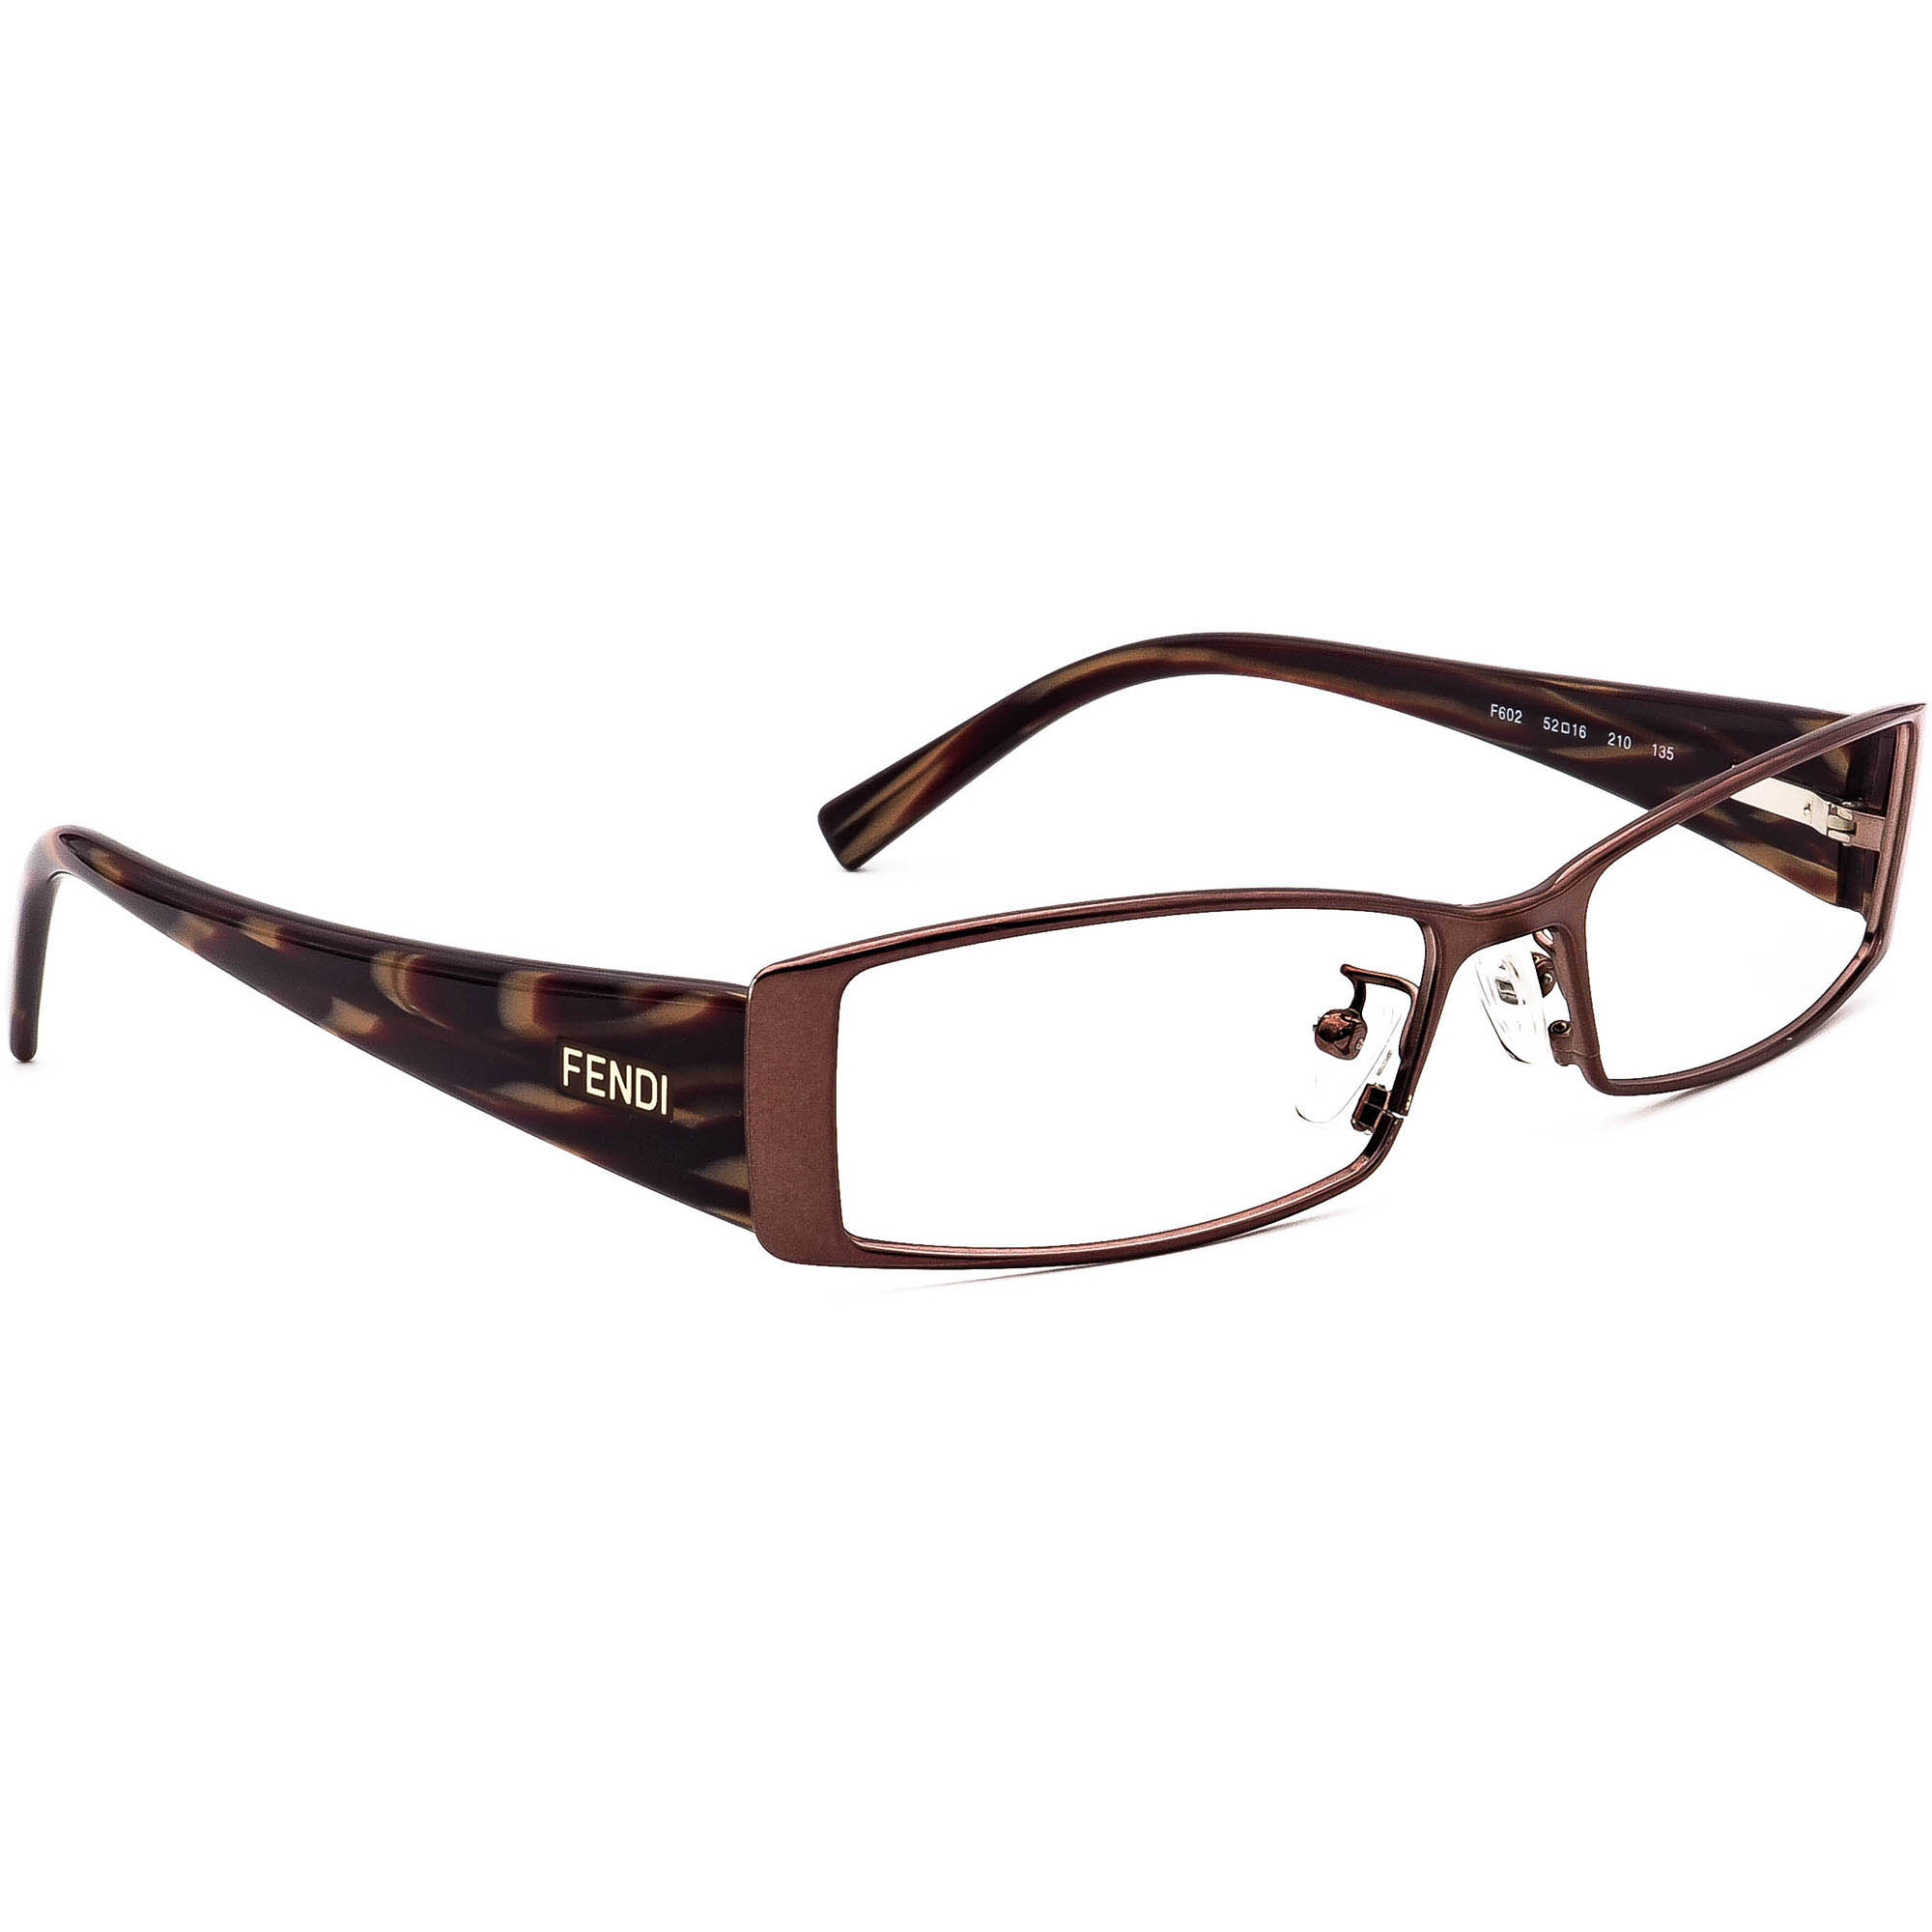 Fendi F602 210 Eyeglasses